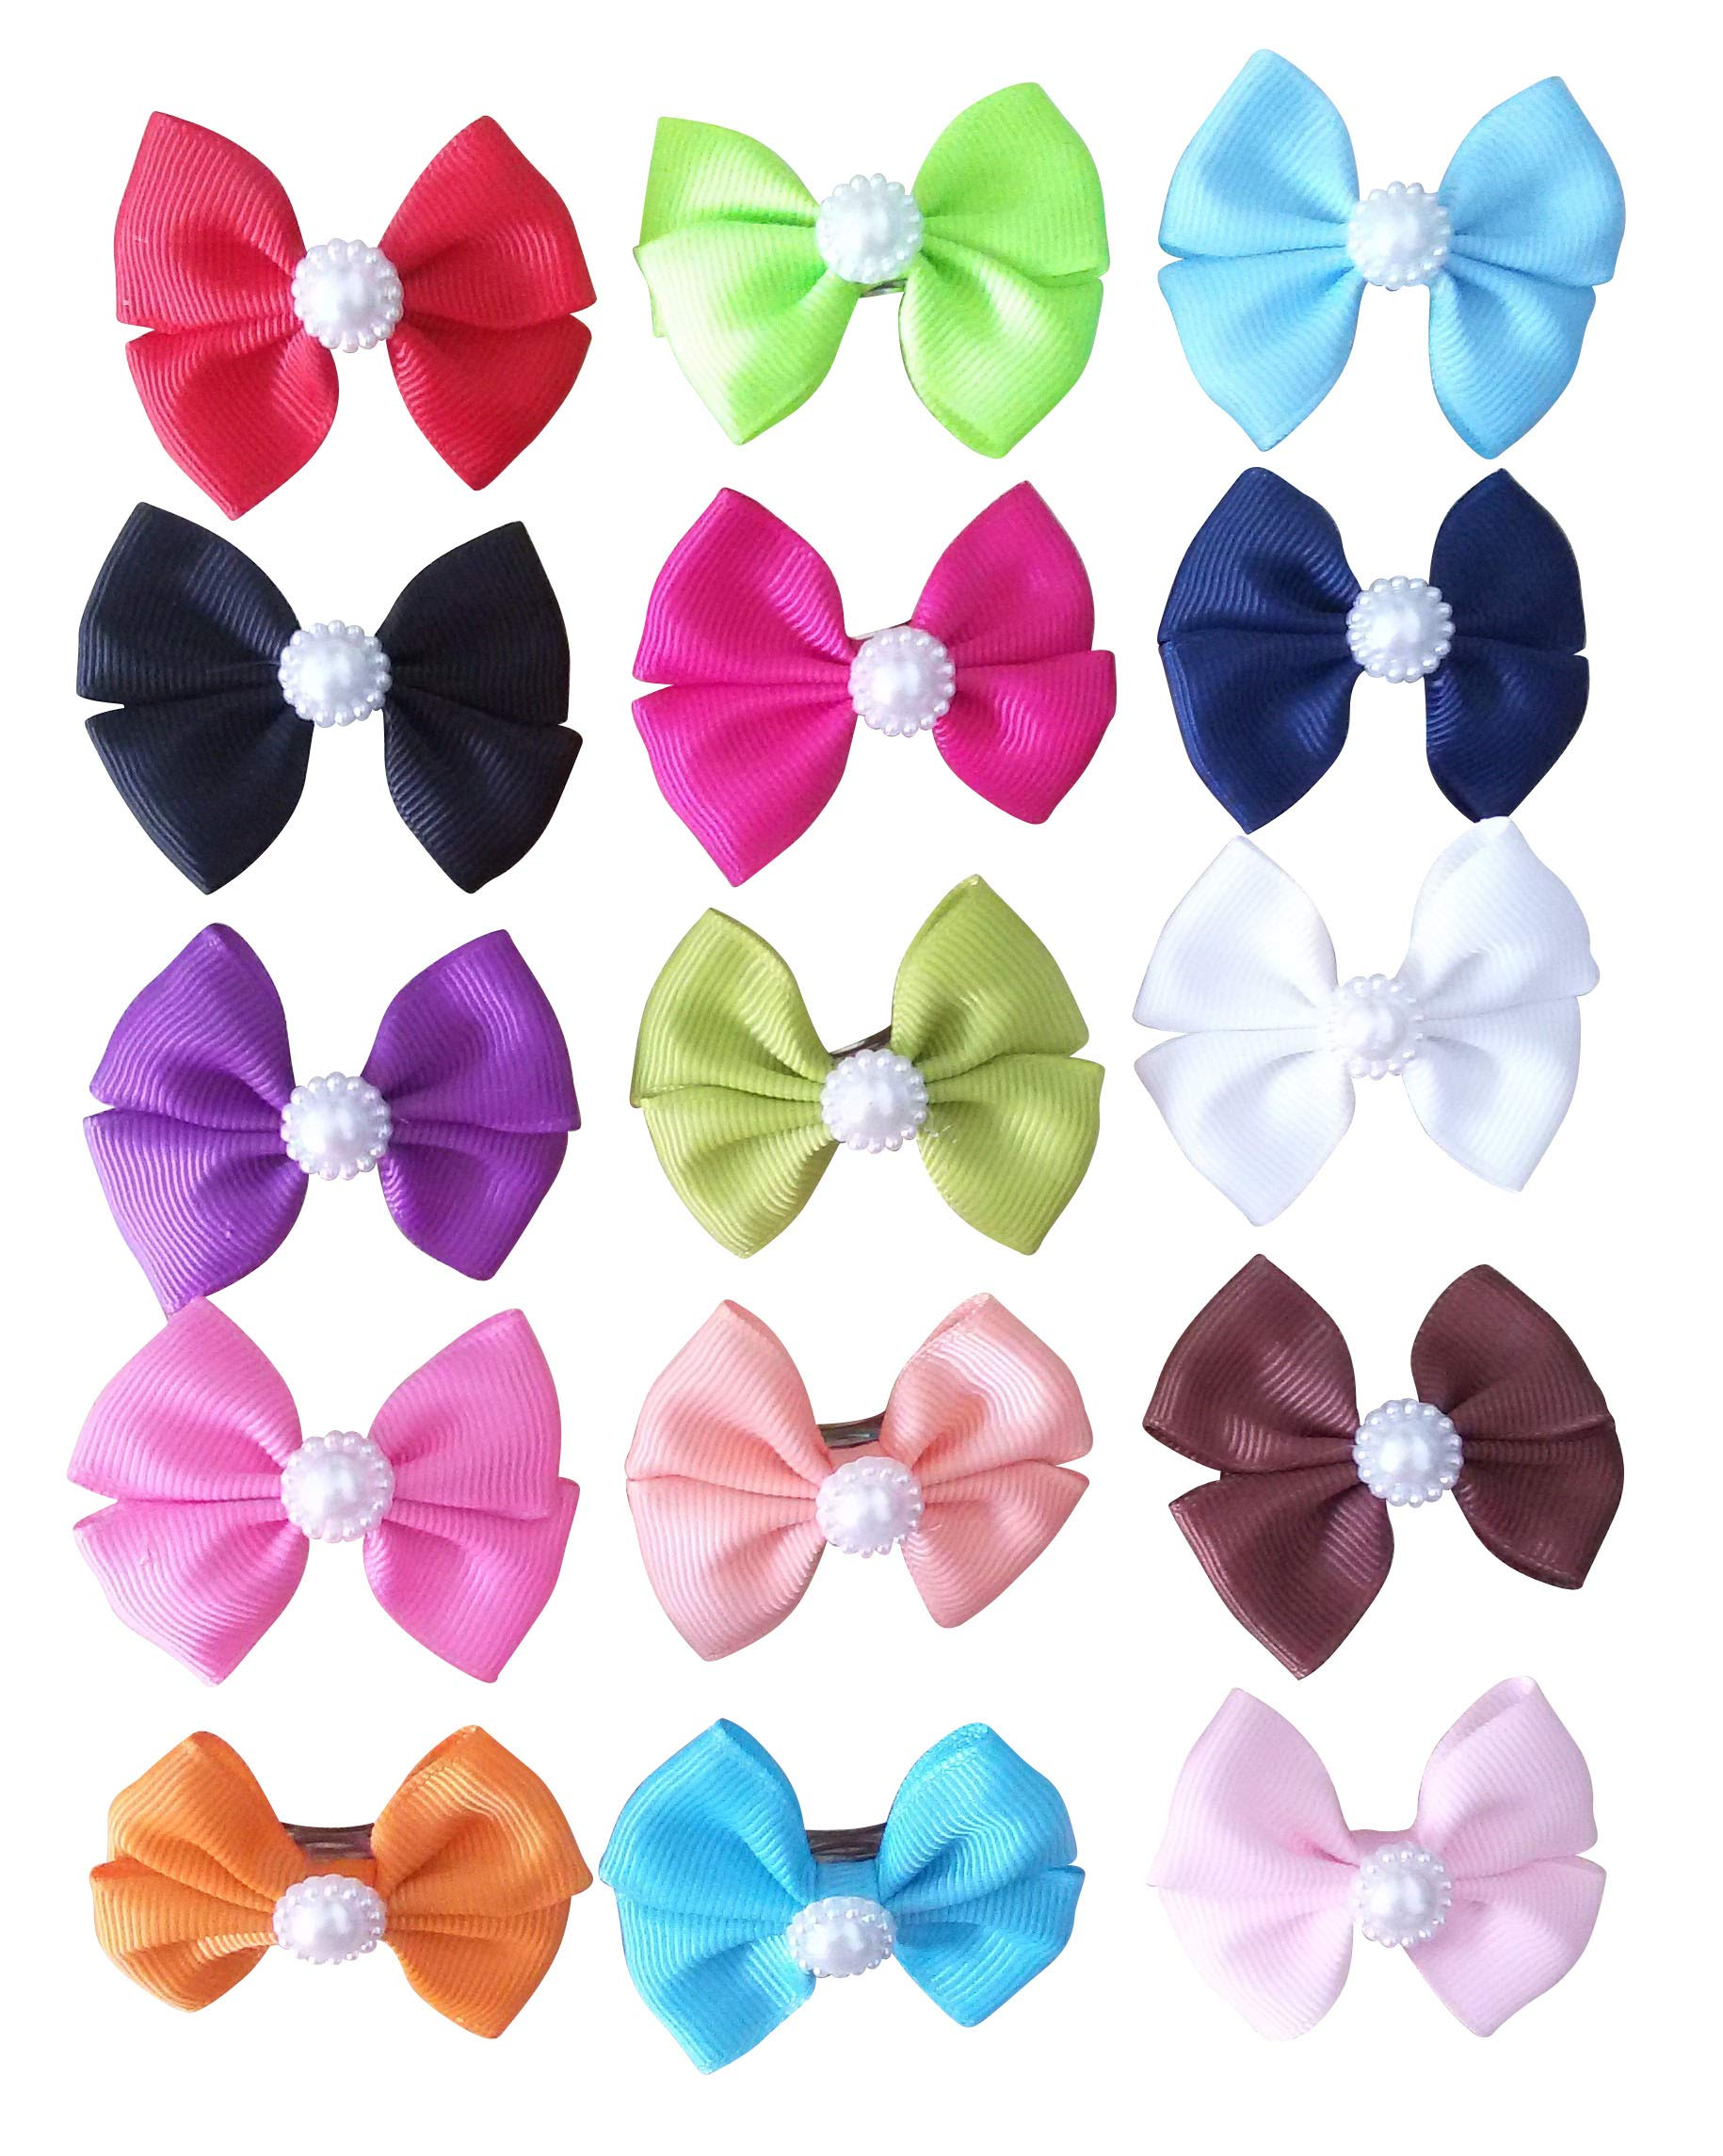 PET SHOW Plain Bowknot French Barrette Pet Dog Hair Bows Clips Puppy Cat Grooming Hair Accessories Pack of 10 by PET SHOW